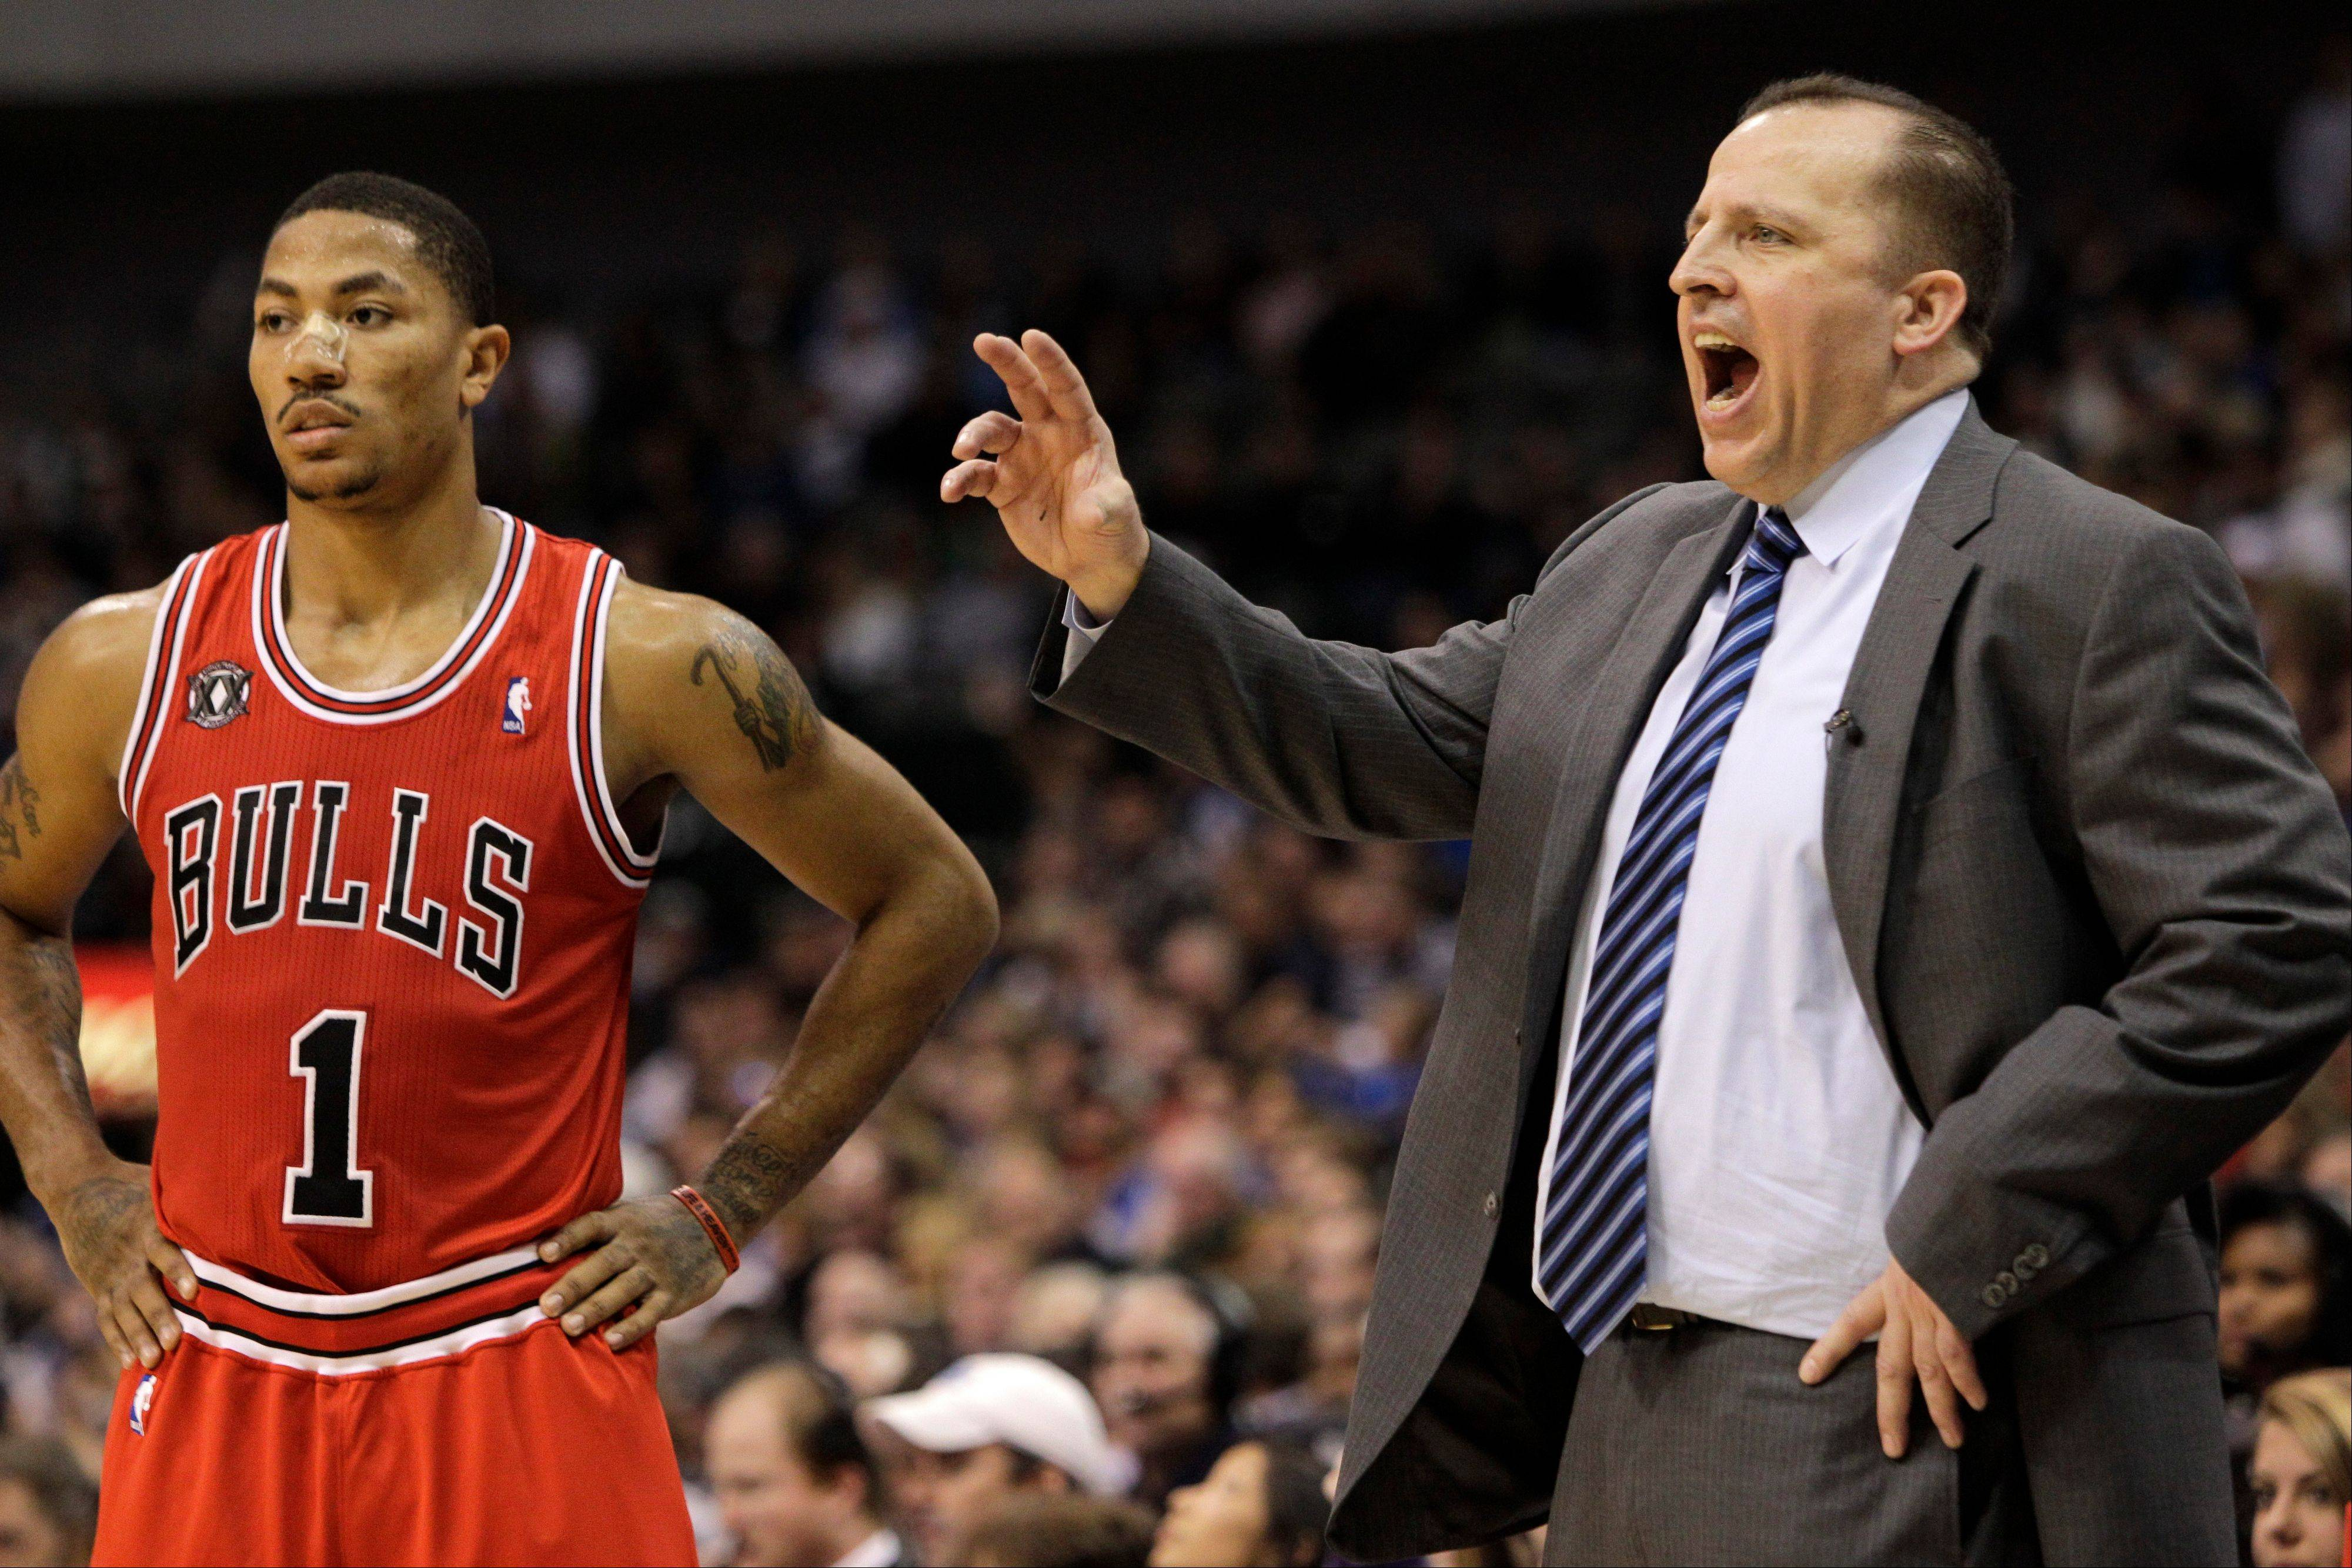 When coach Tom Thibodeau and Derrick Rose are reunited on the court this season, the Bulls� dynamic will change, according to Mike McGraw.